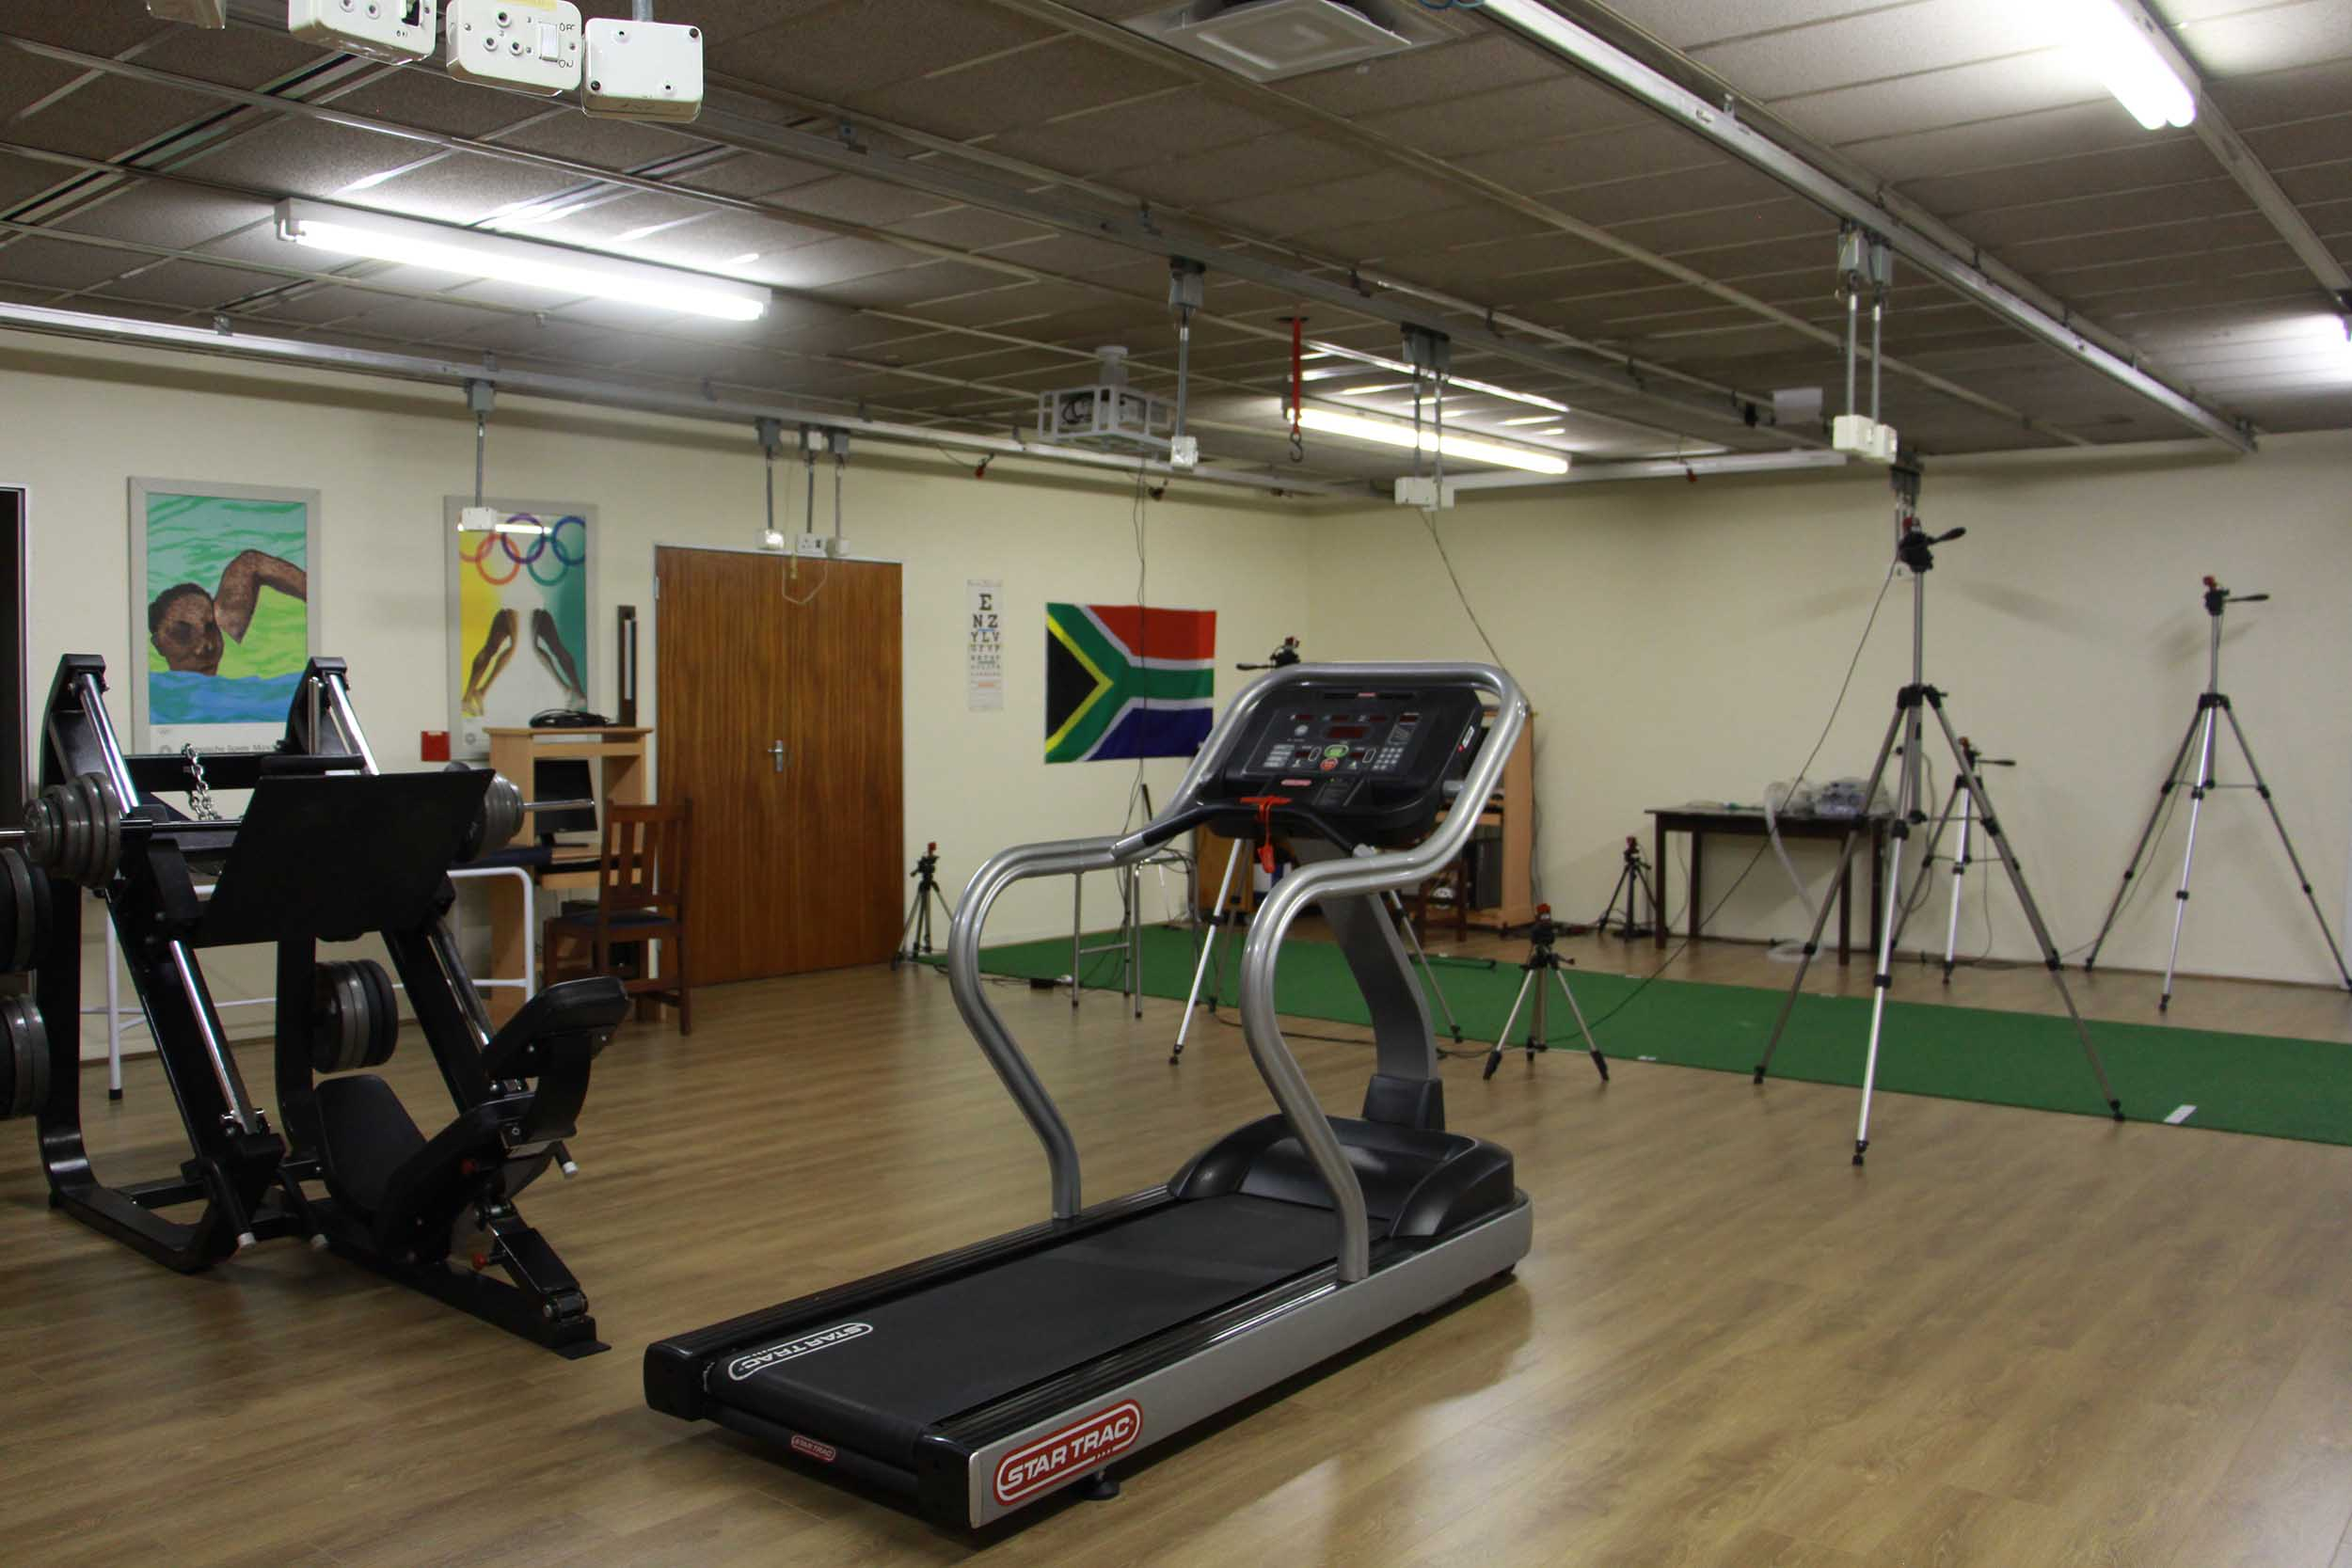 Sports lab gets a makeover